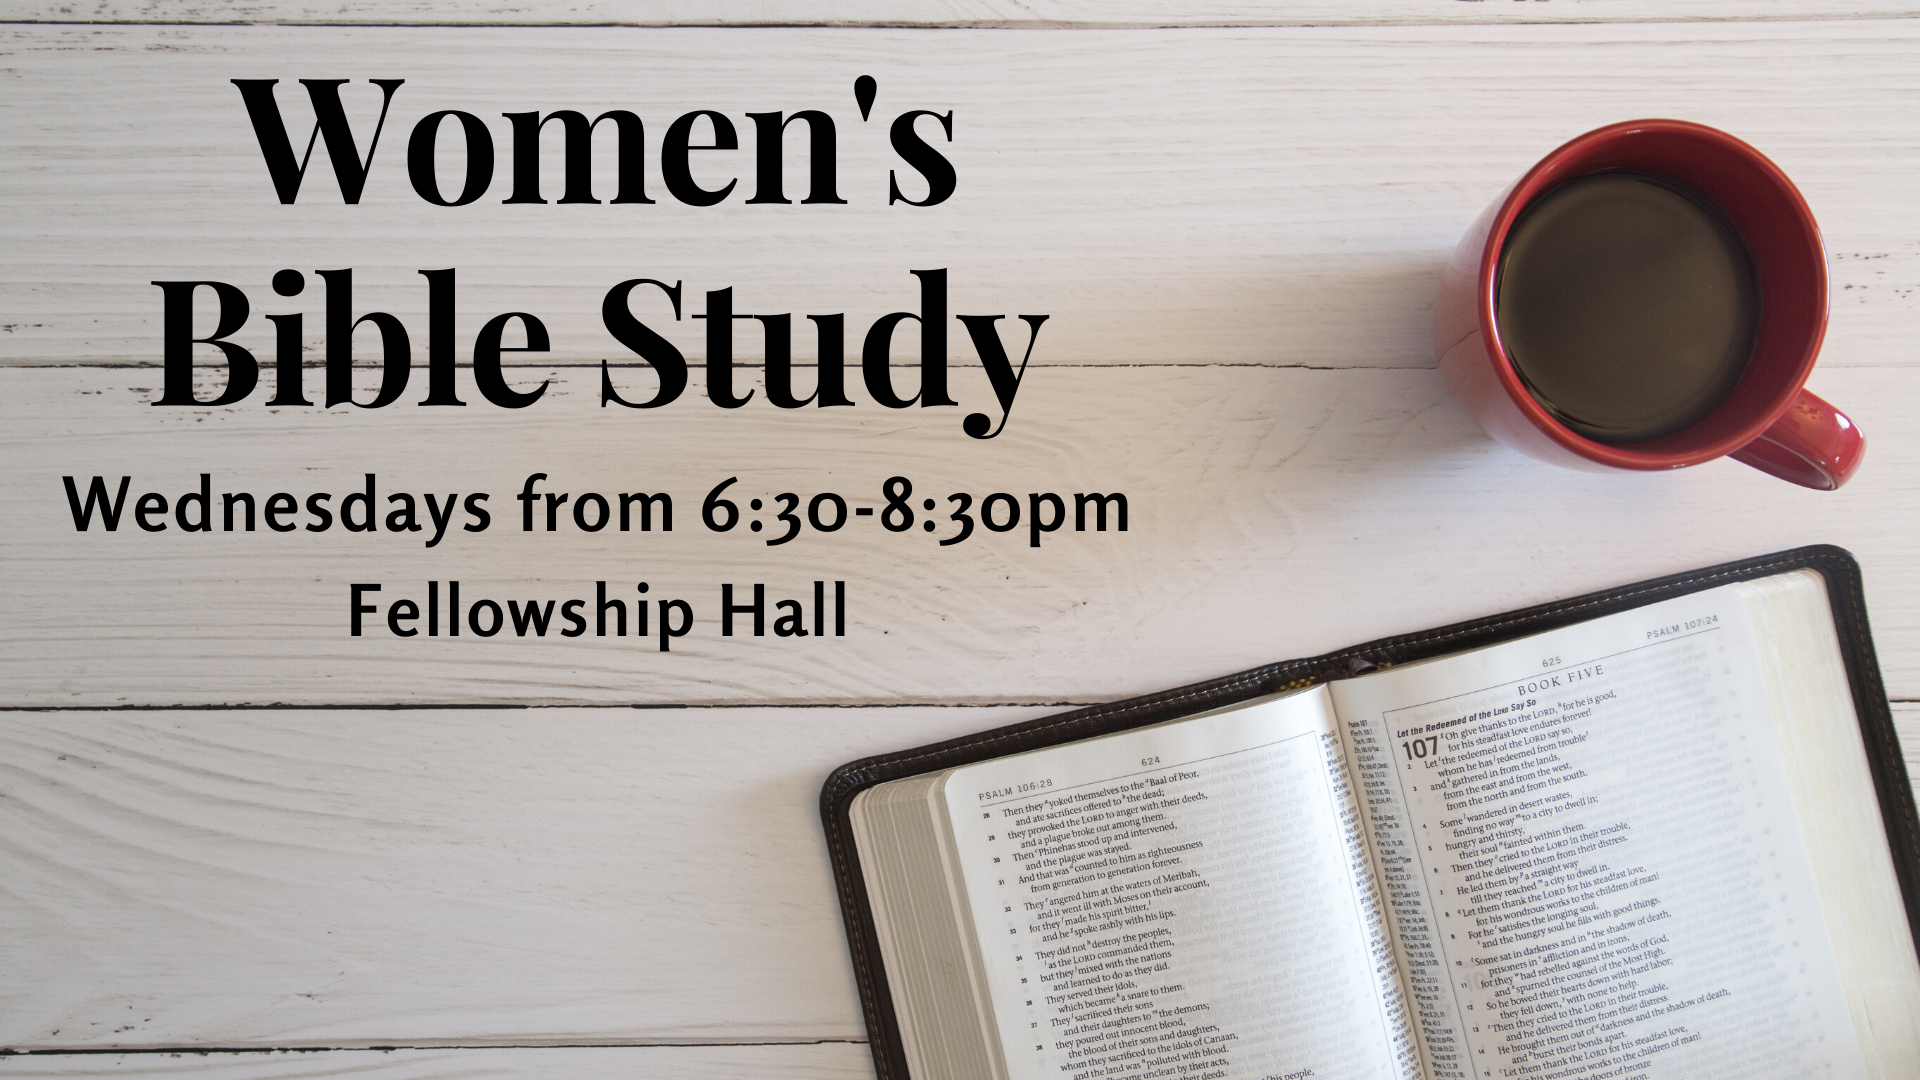 Copy of Women's Bible Study without watermark image